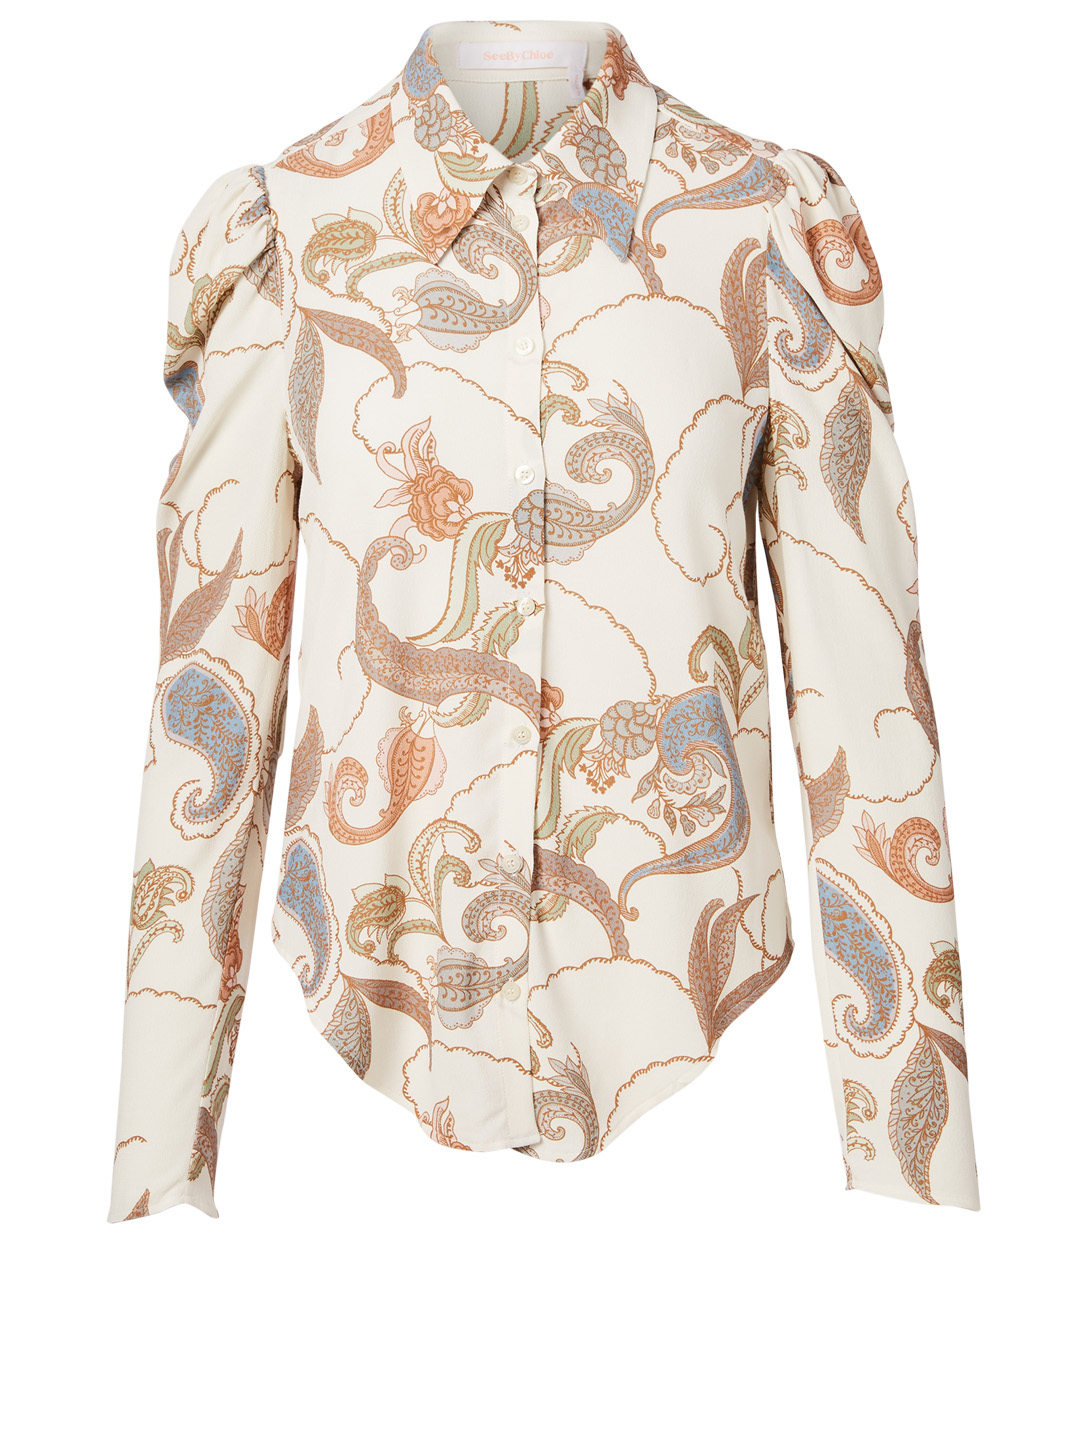 SEE BY CHLOÉ Puff-Shoulder Blouse In Paisley Print Women's White